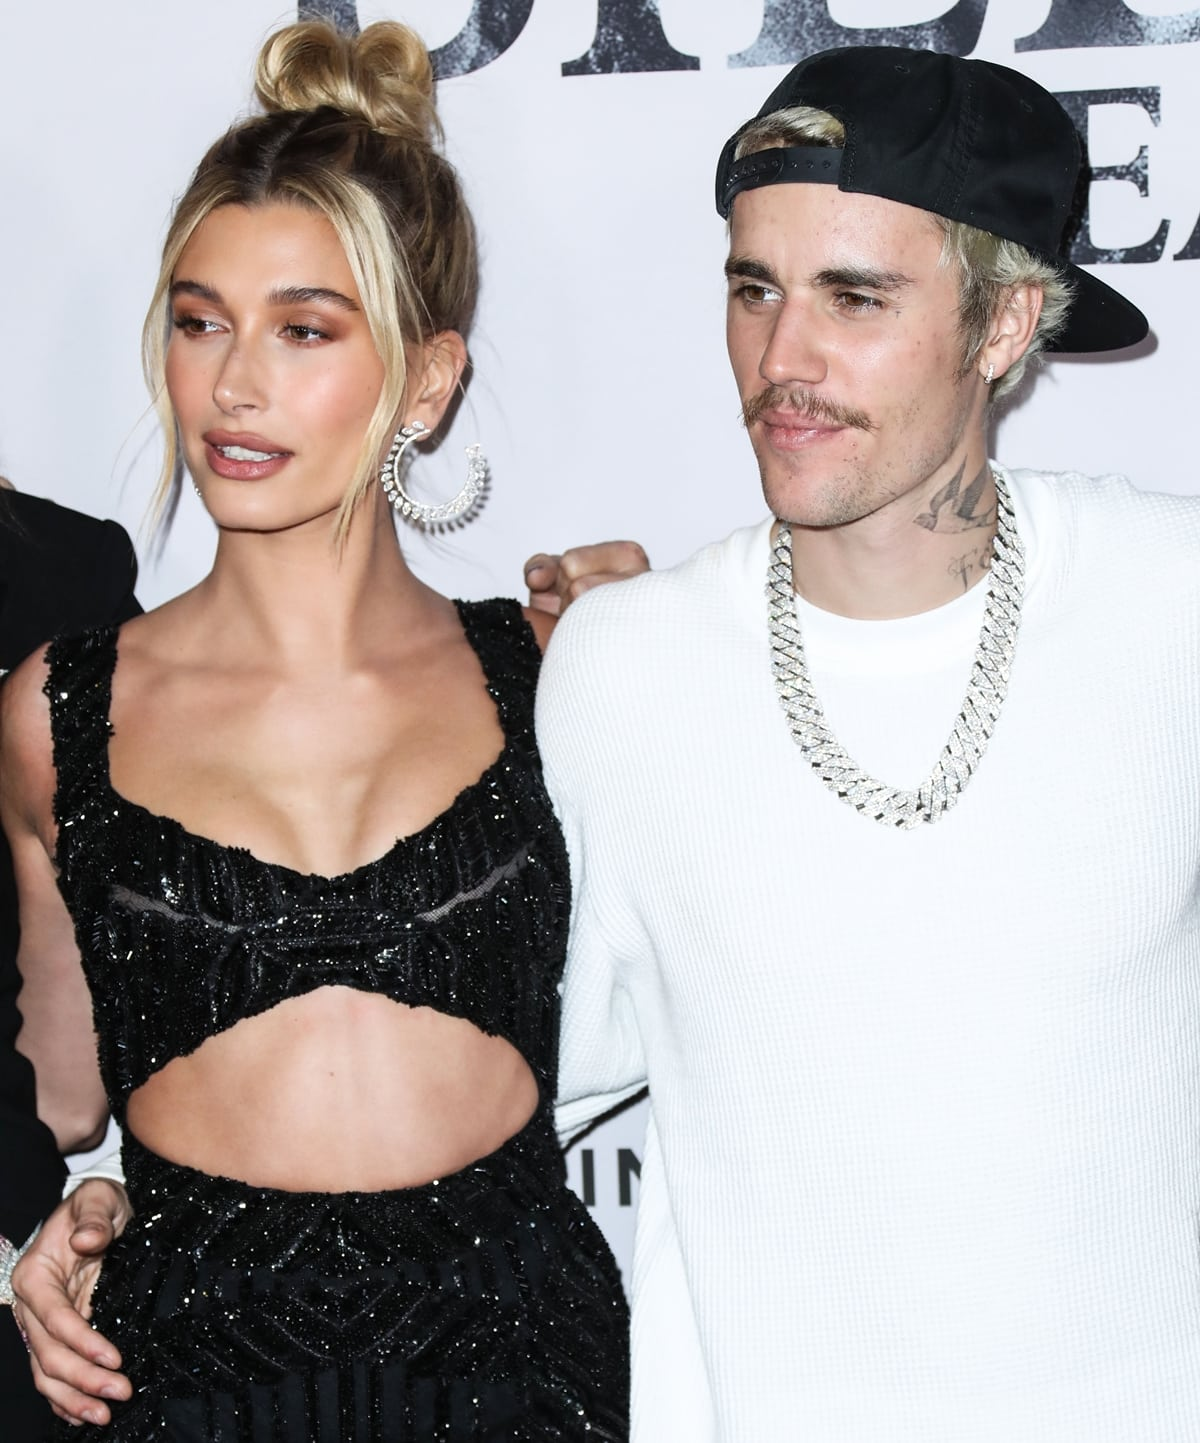 When not wearing high heels, Hailey Bieber is about two inches shorter than her husband Justin Bieber